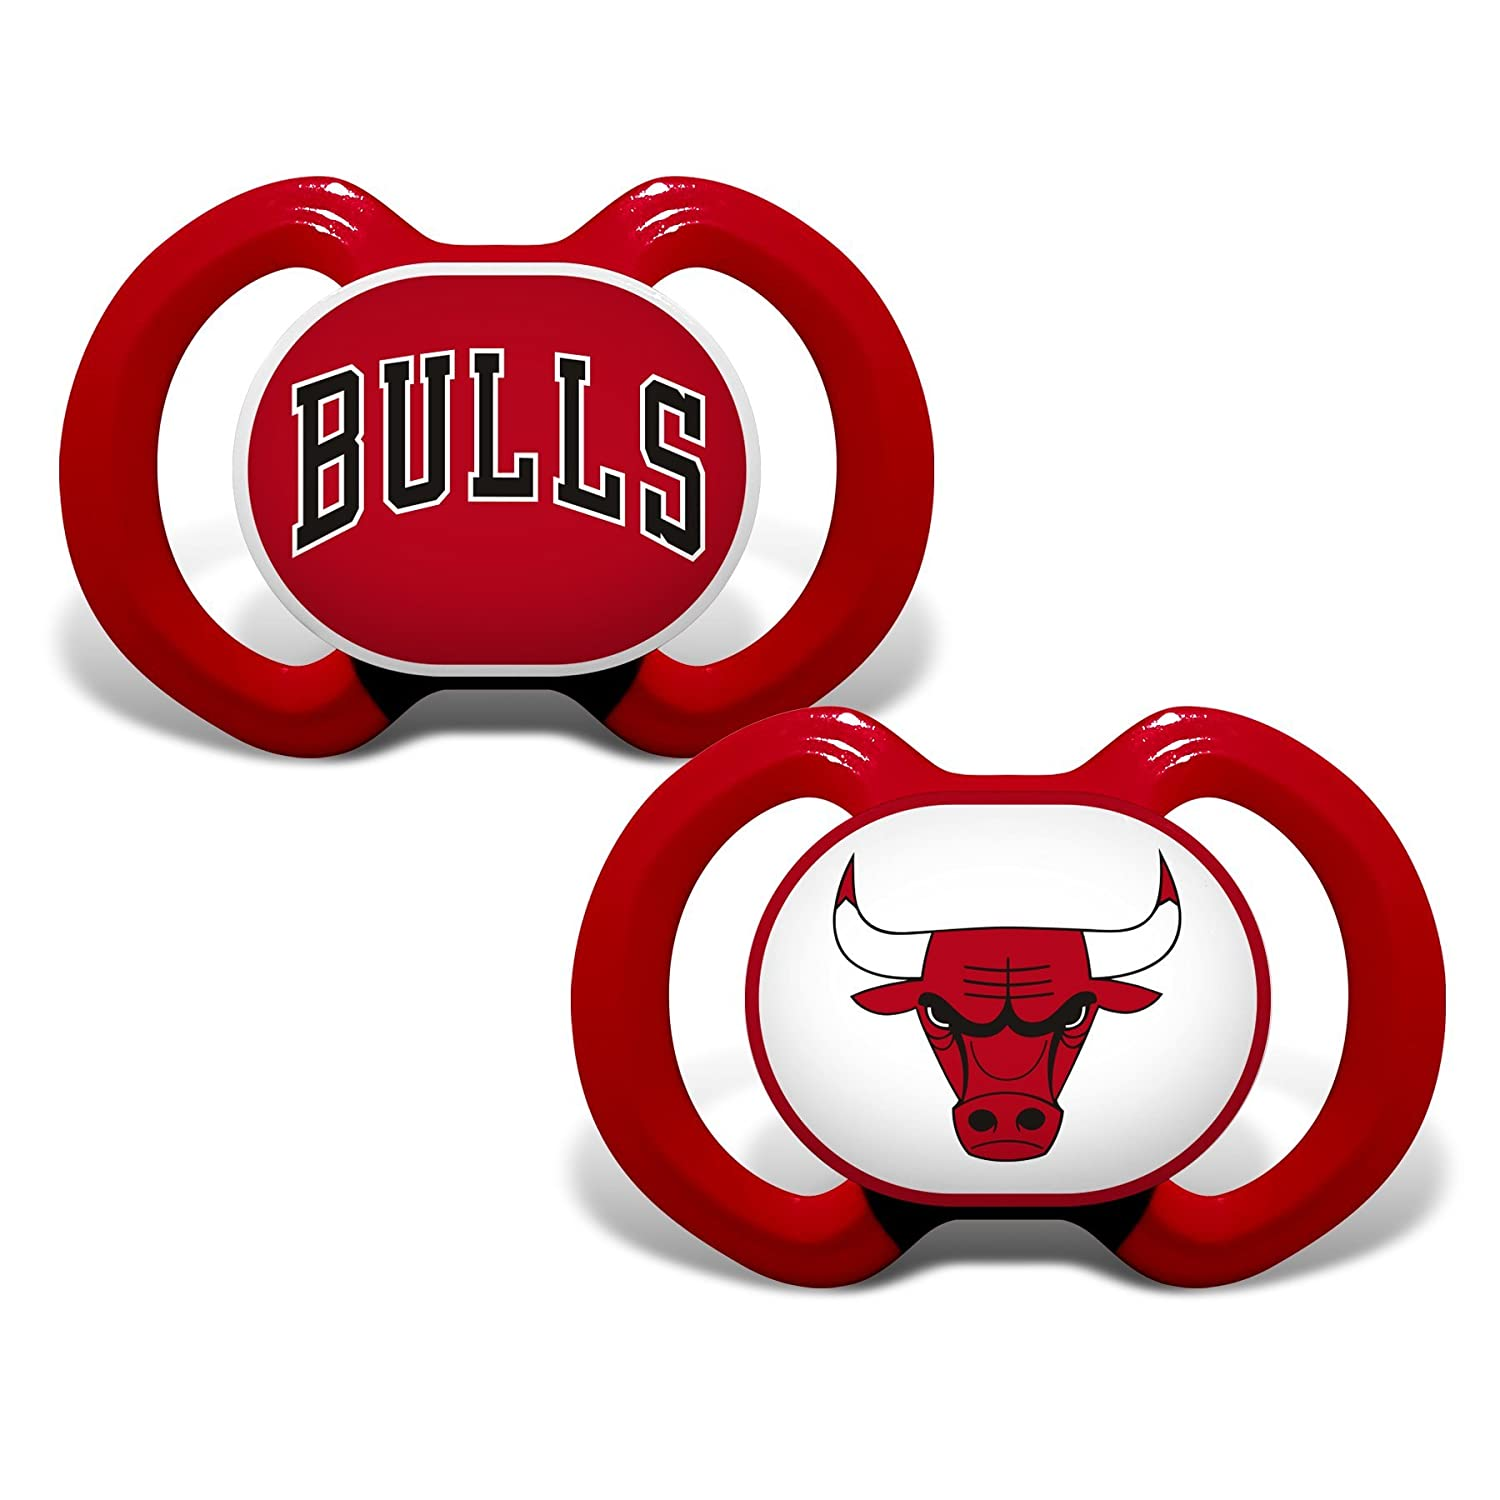 Amazon.com: Chicago Bulls de la NBA bebé recién nacido ...